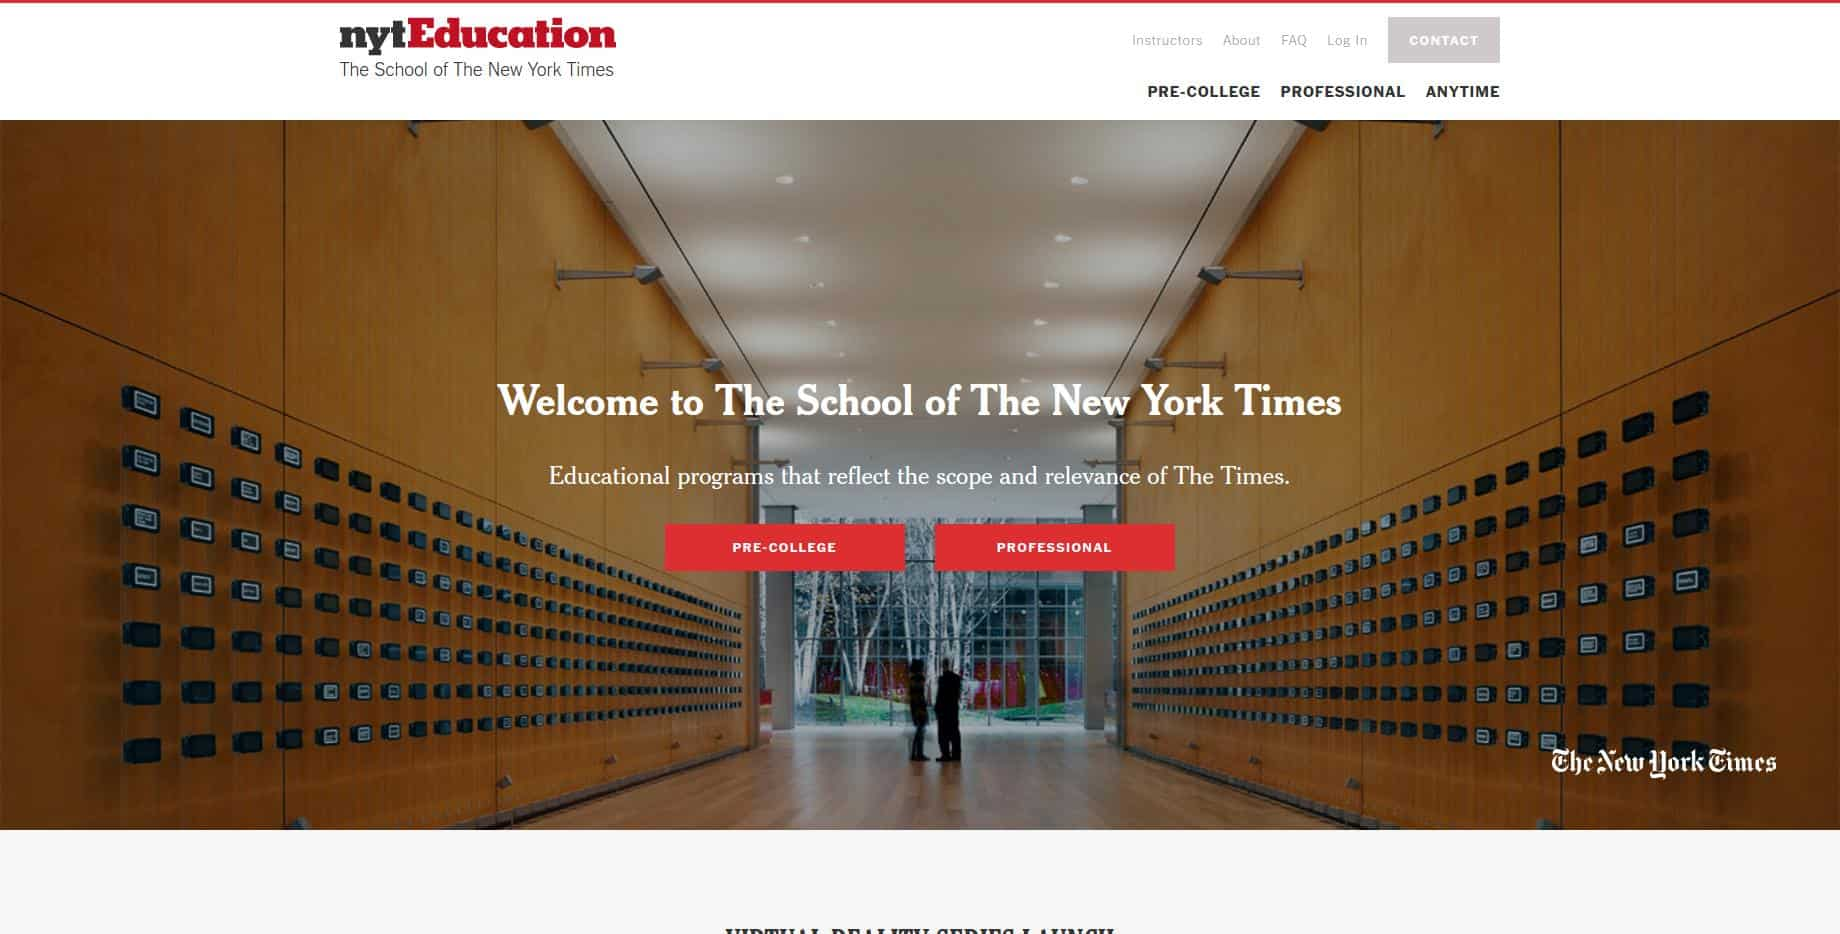 nytEducation The School of The New York Times